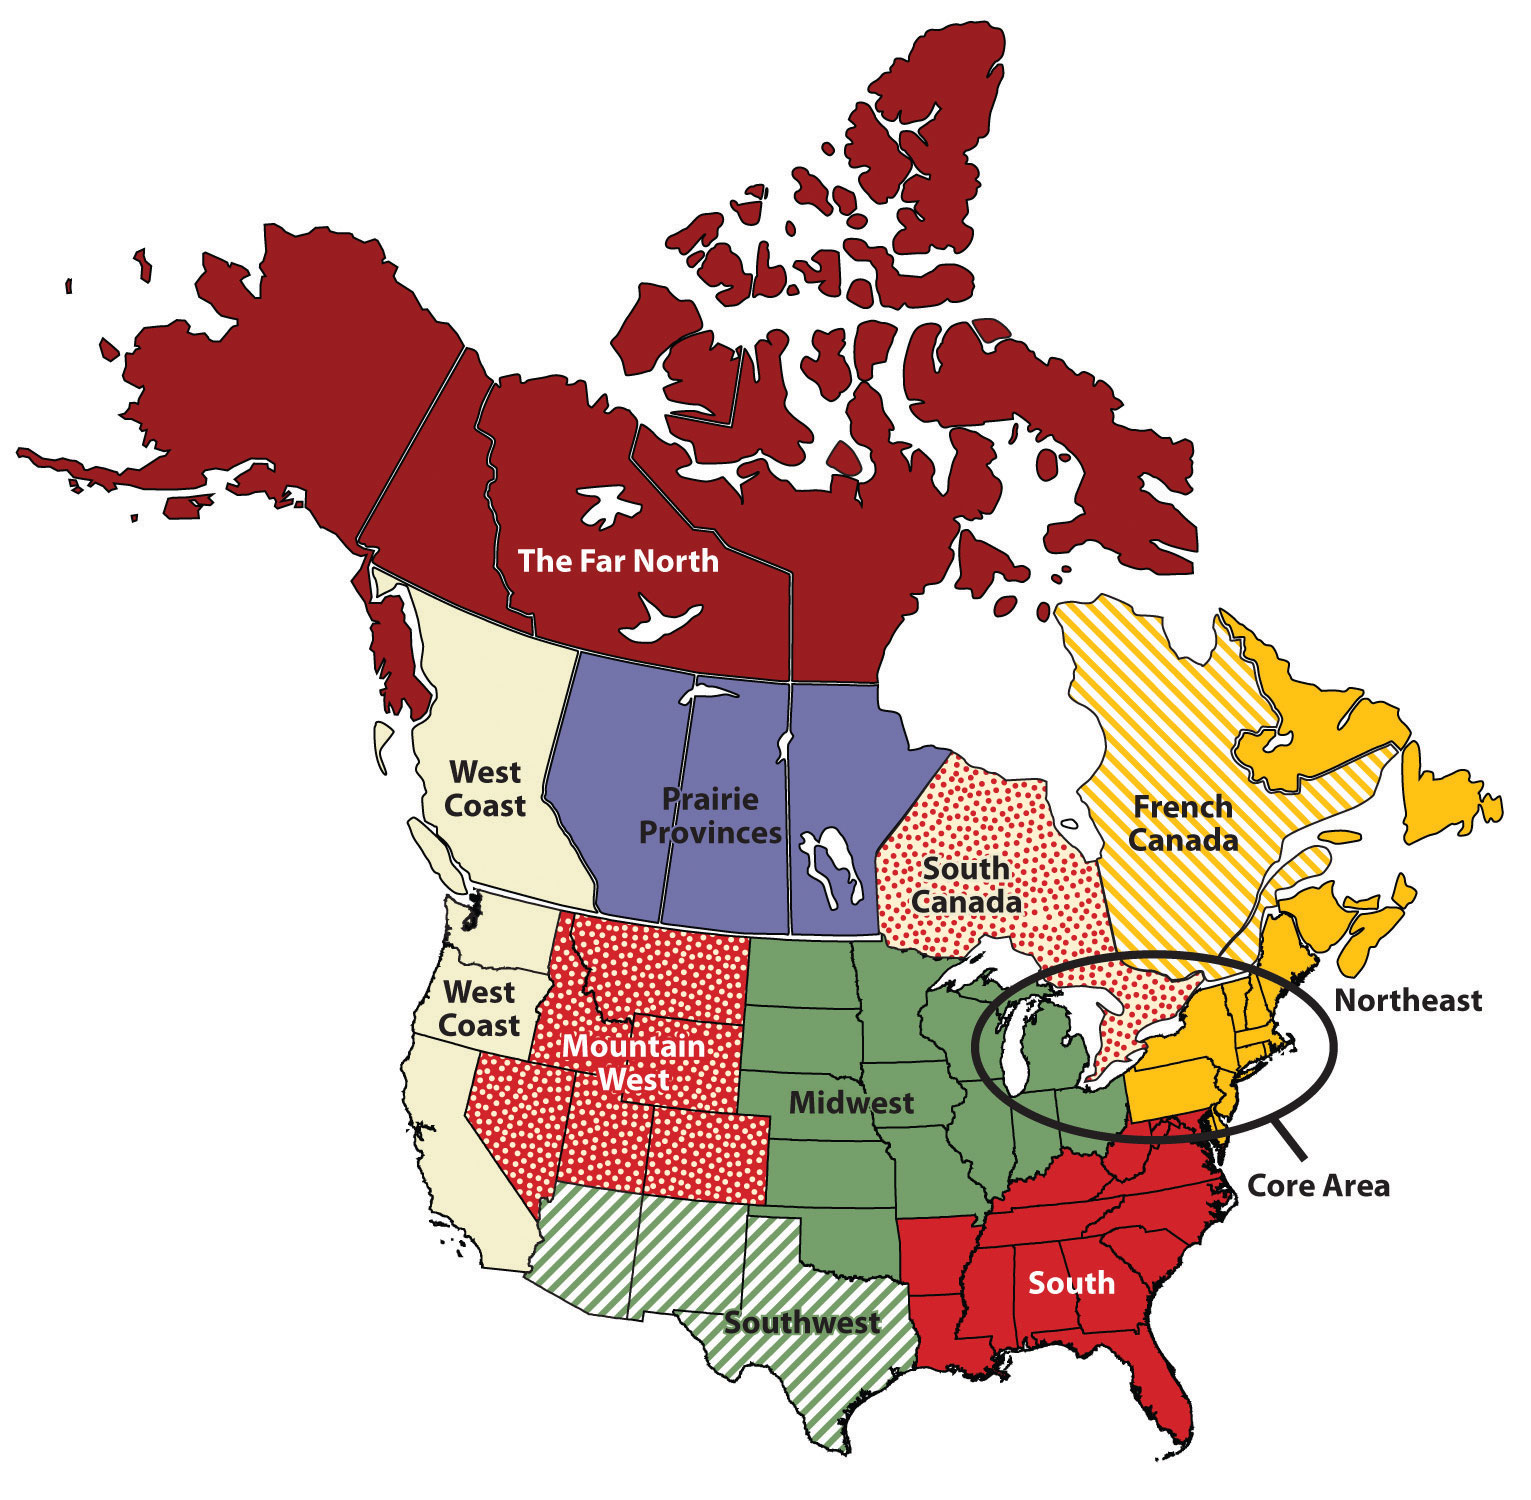 Regional Map Of Canada.Regions Of The United States And Canada